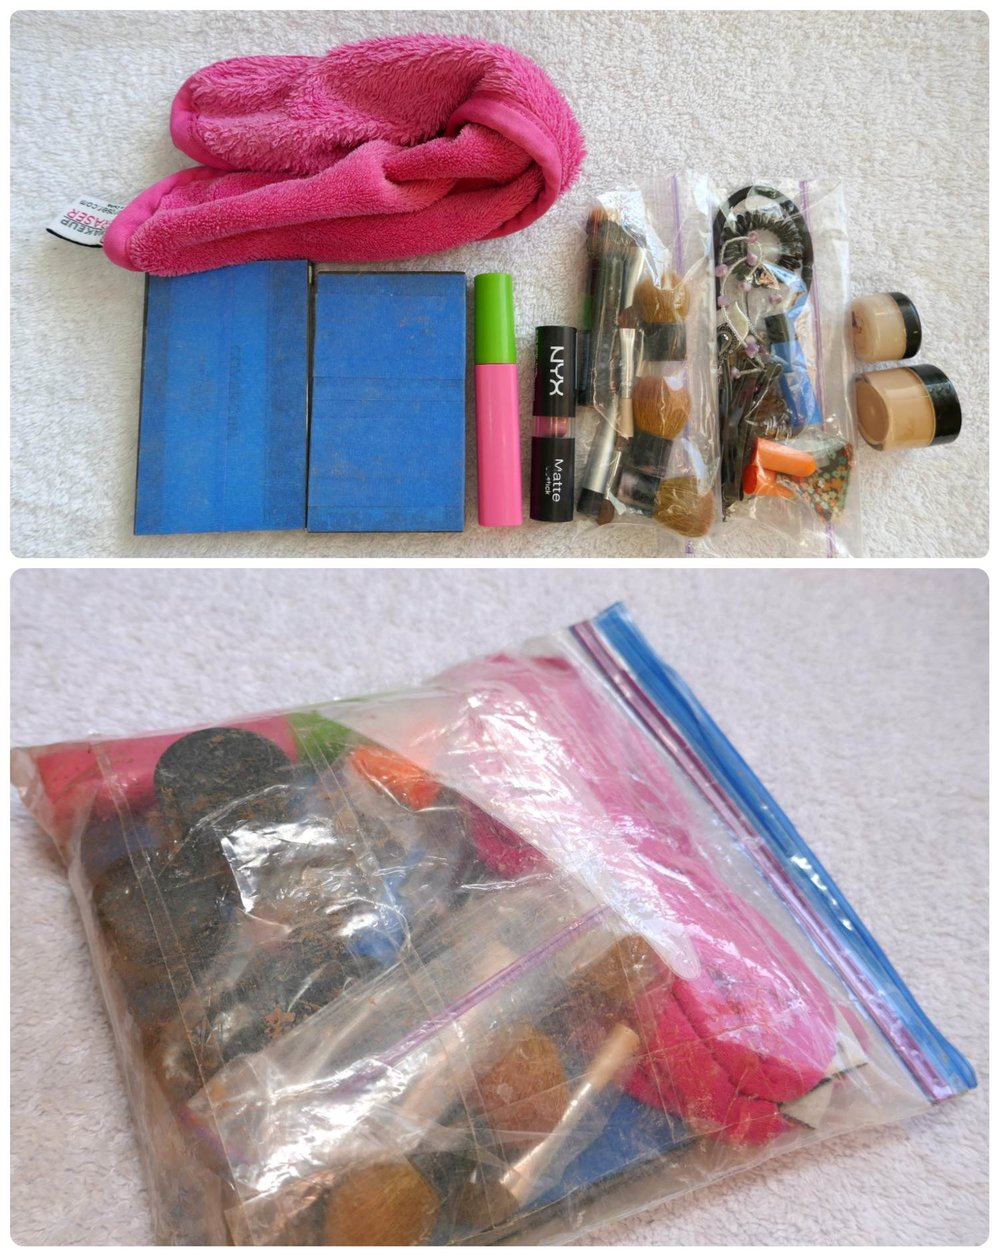 All of my makeup fits into a single quart size Ziploc bag! I've been using the same reinforced Ziploc bag as my DIY travel makeup case (our  DIY packing cubes ) for over 2 years.